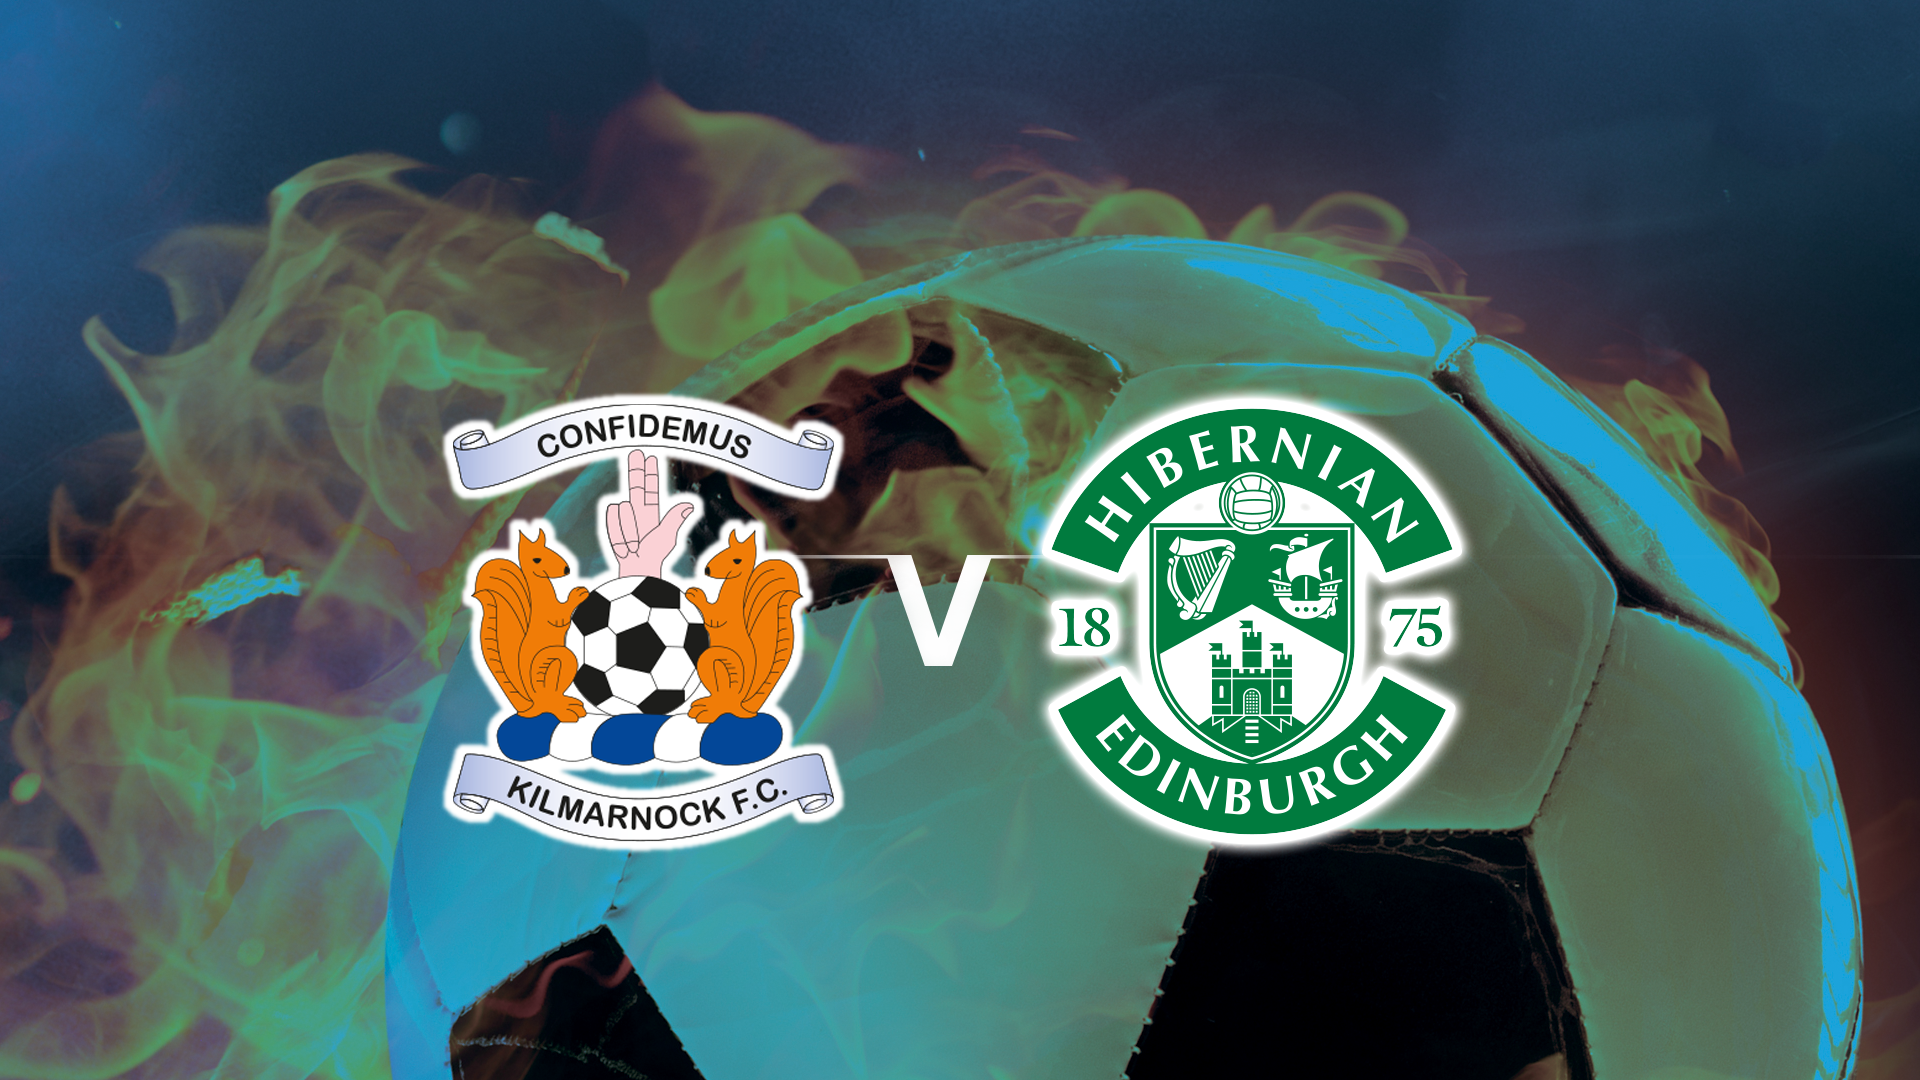 Match Day Offers, Kilmarnock Vs Hibs - Saturday 14th September